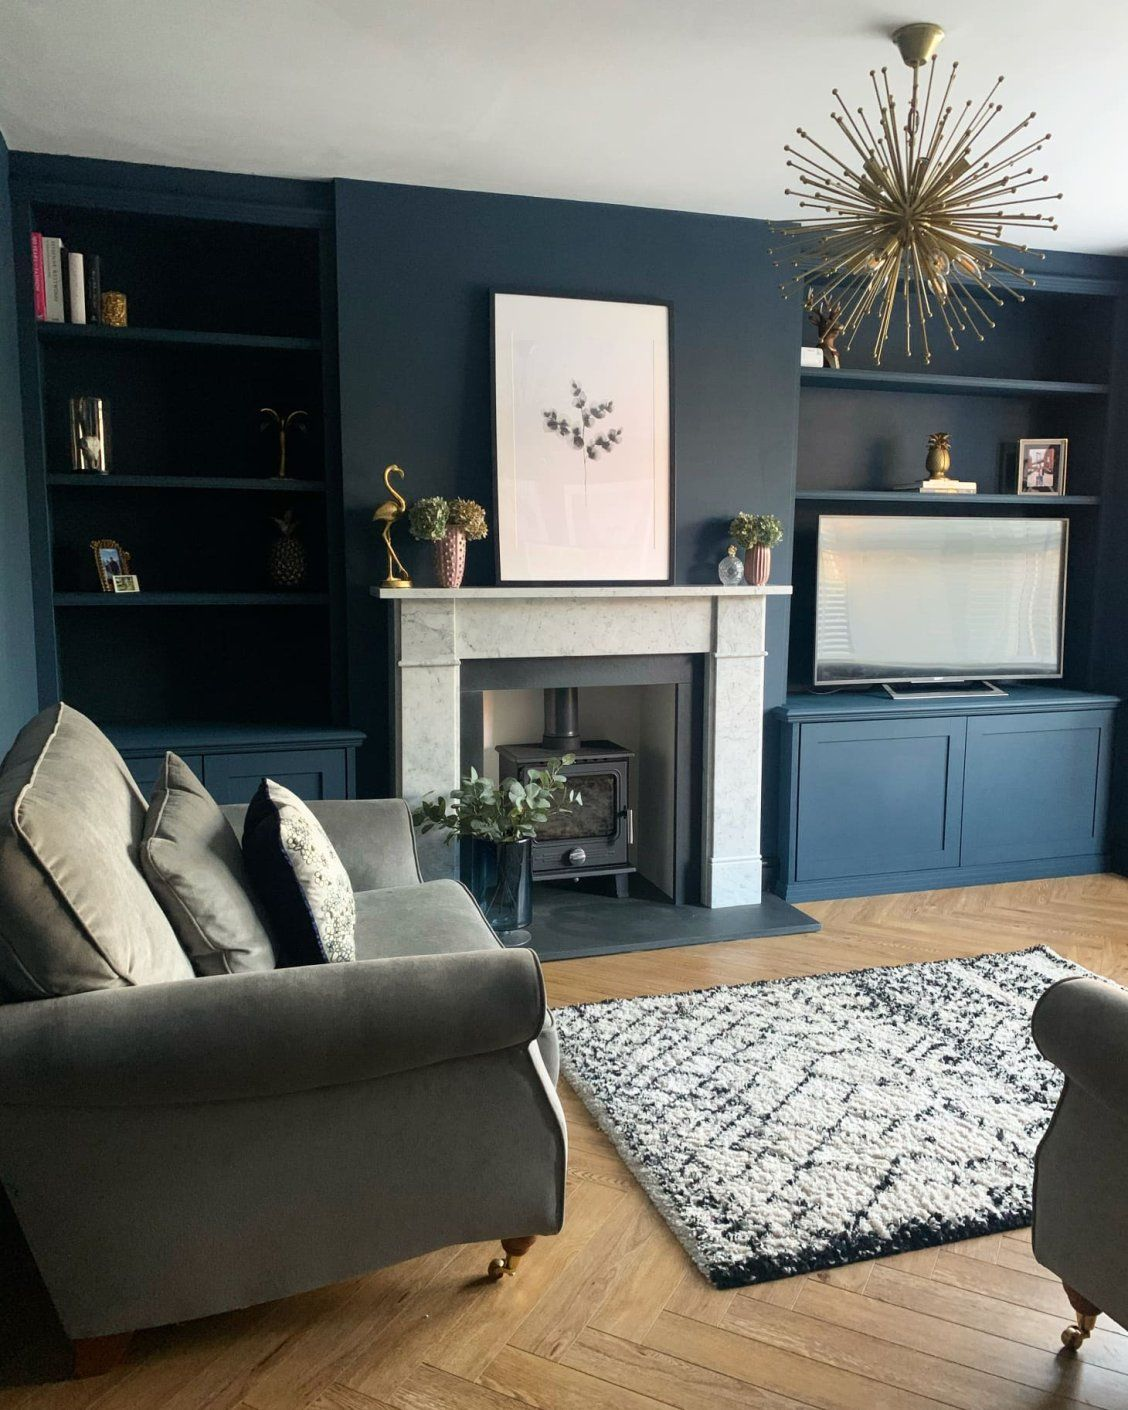 Oh Look Another Uk Home With A Deliciously Dark And Dramatic Color Palette Lounge Room Styling Blue Living Room Color Dark Living Rooms